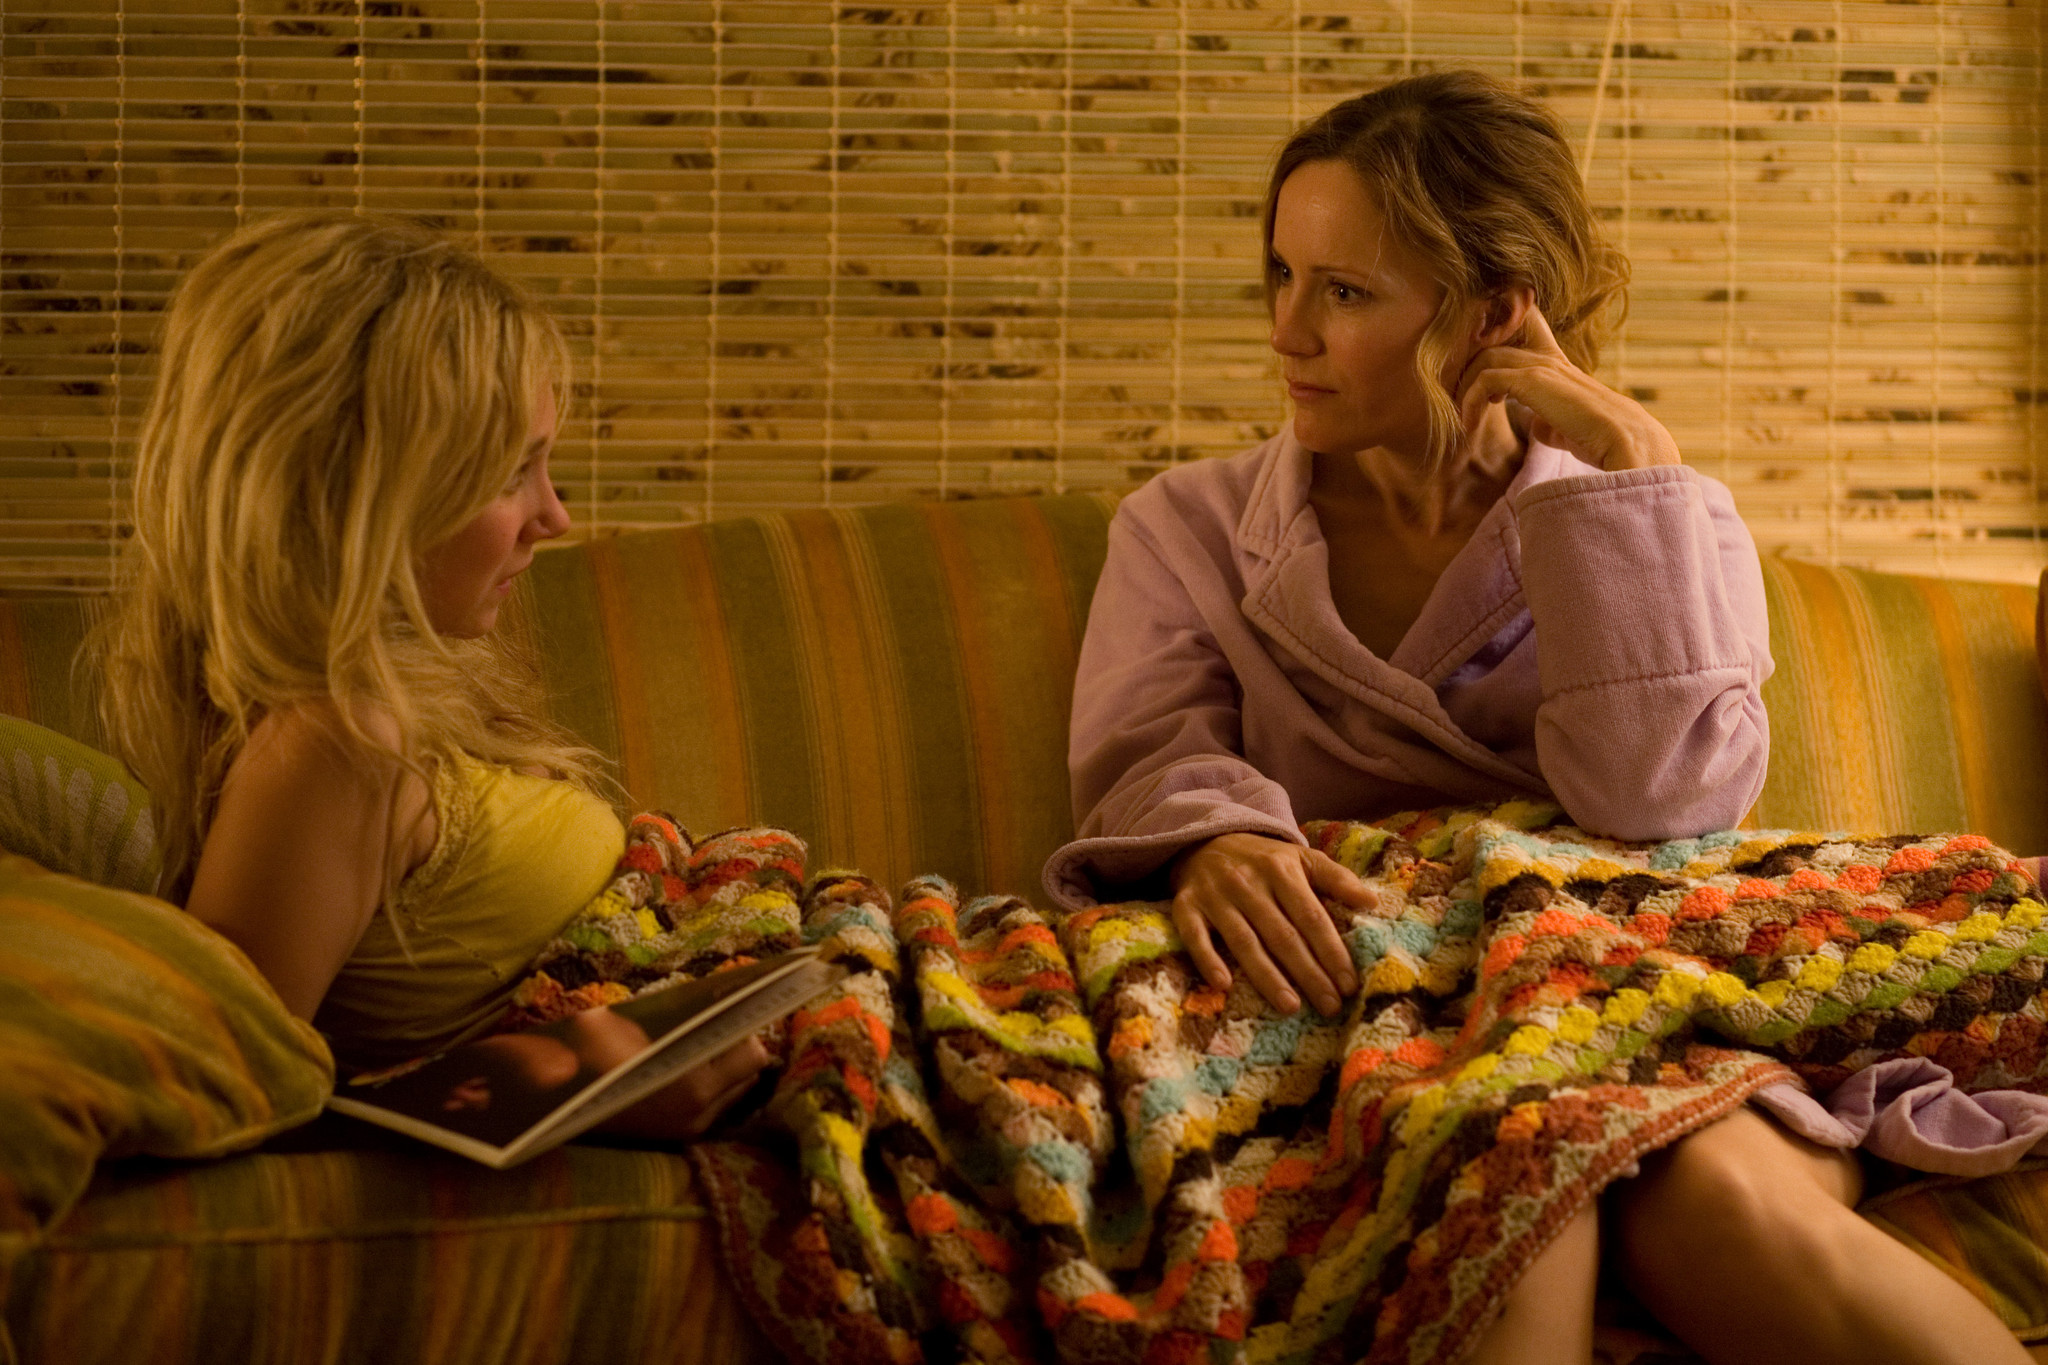 15 New Images from Little Birds with Juno Temple, Leslie Mann, and Kate Bosworth